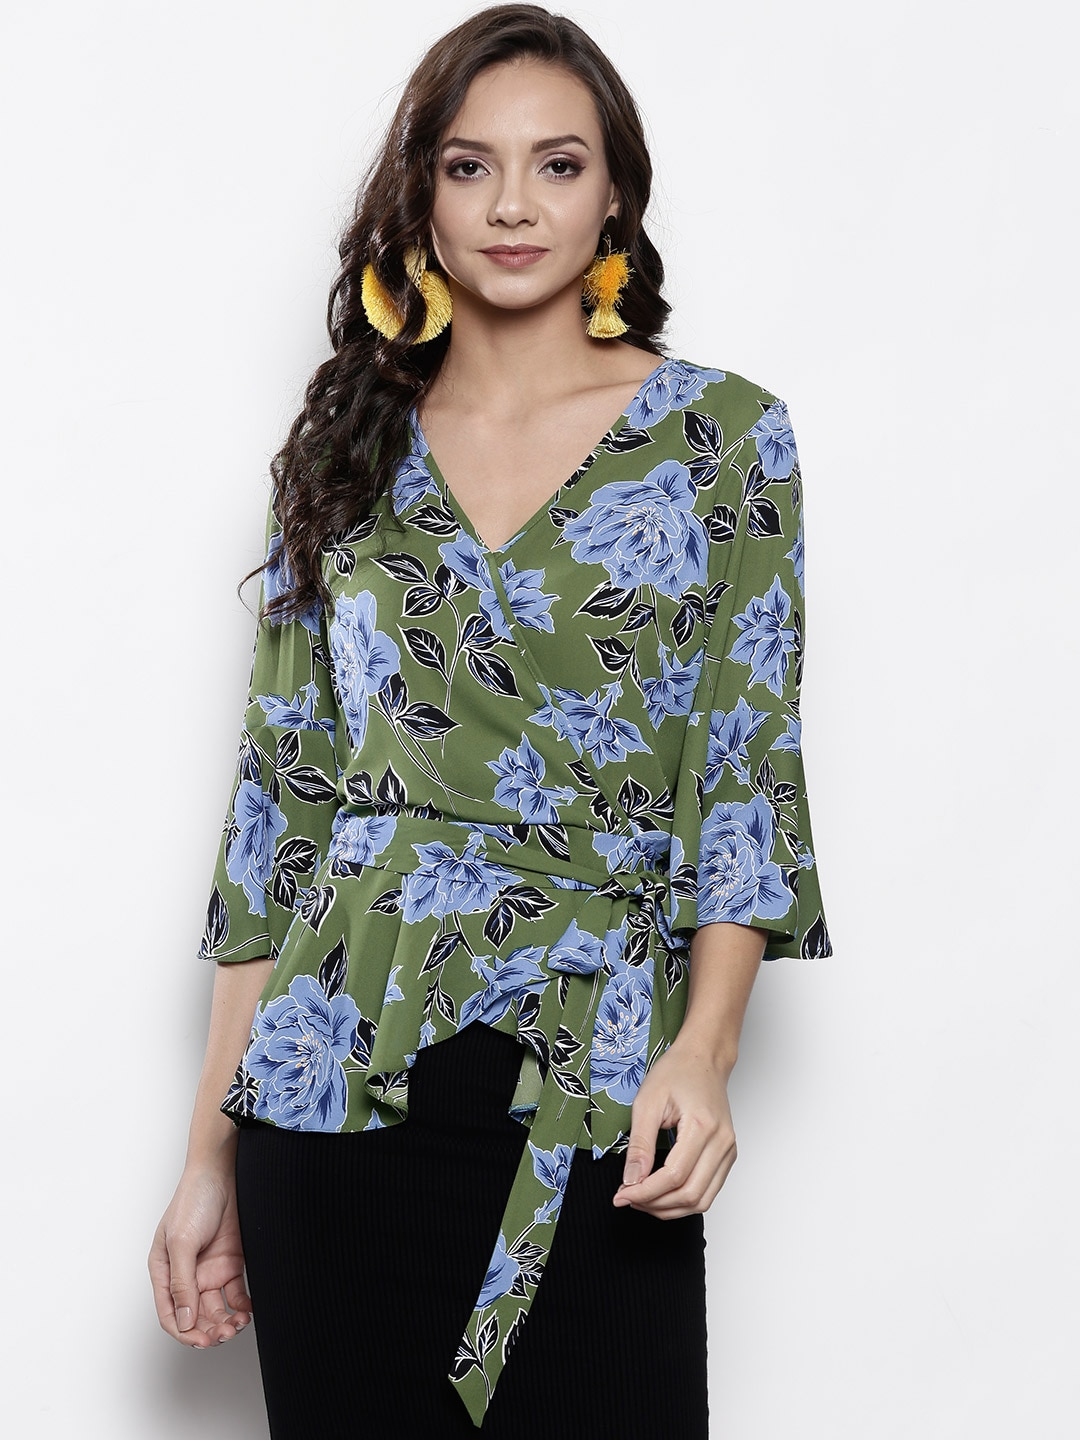 7a6bff39cc470a Wrap Tops - Buy Wrap Tops online in India